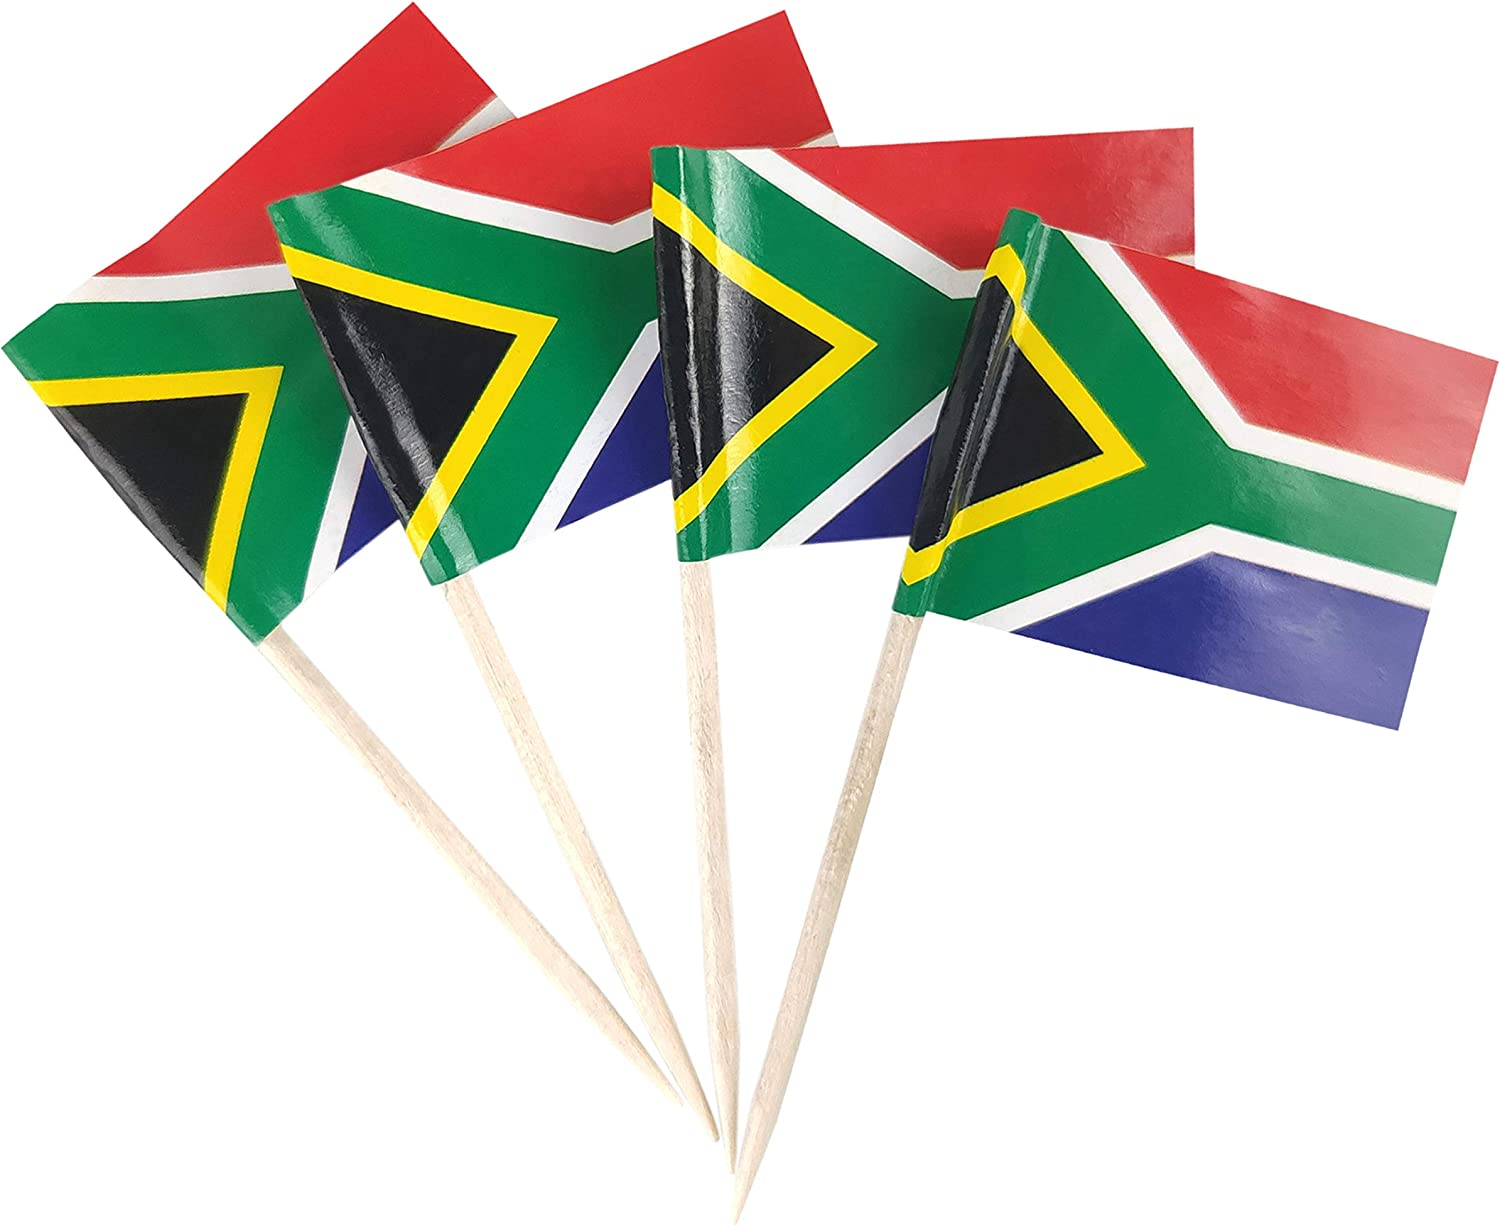 JBCD 100 Pcs South Africa Flag Toothpicks South African Flags Cupcake Toppers Decorations, Cocktail Toothpick Flag Cake Topper Picks Mini Small Flag Cupcake Pick Sticks